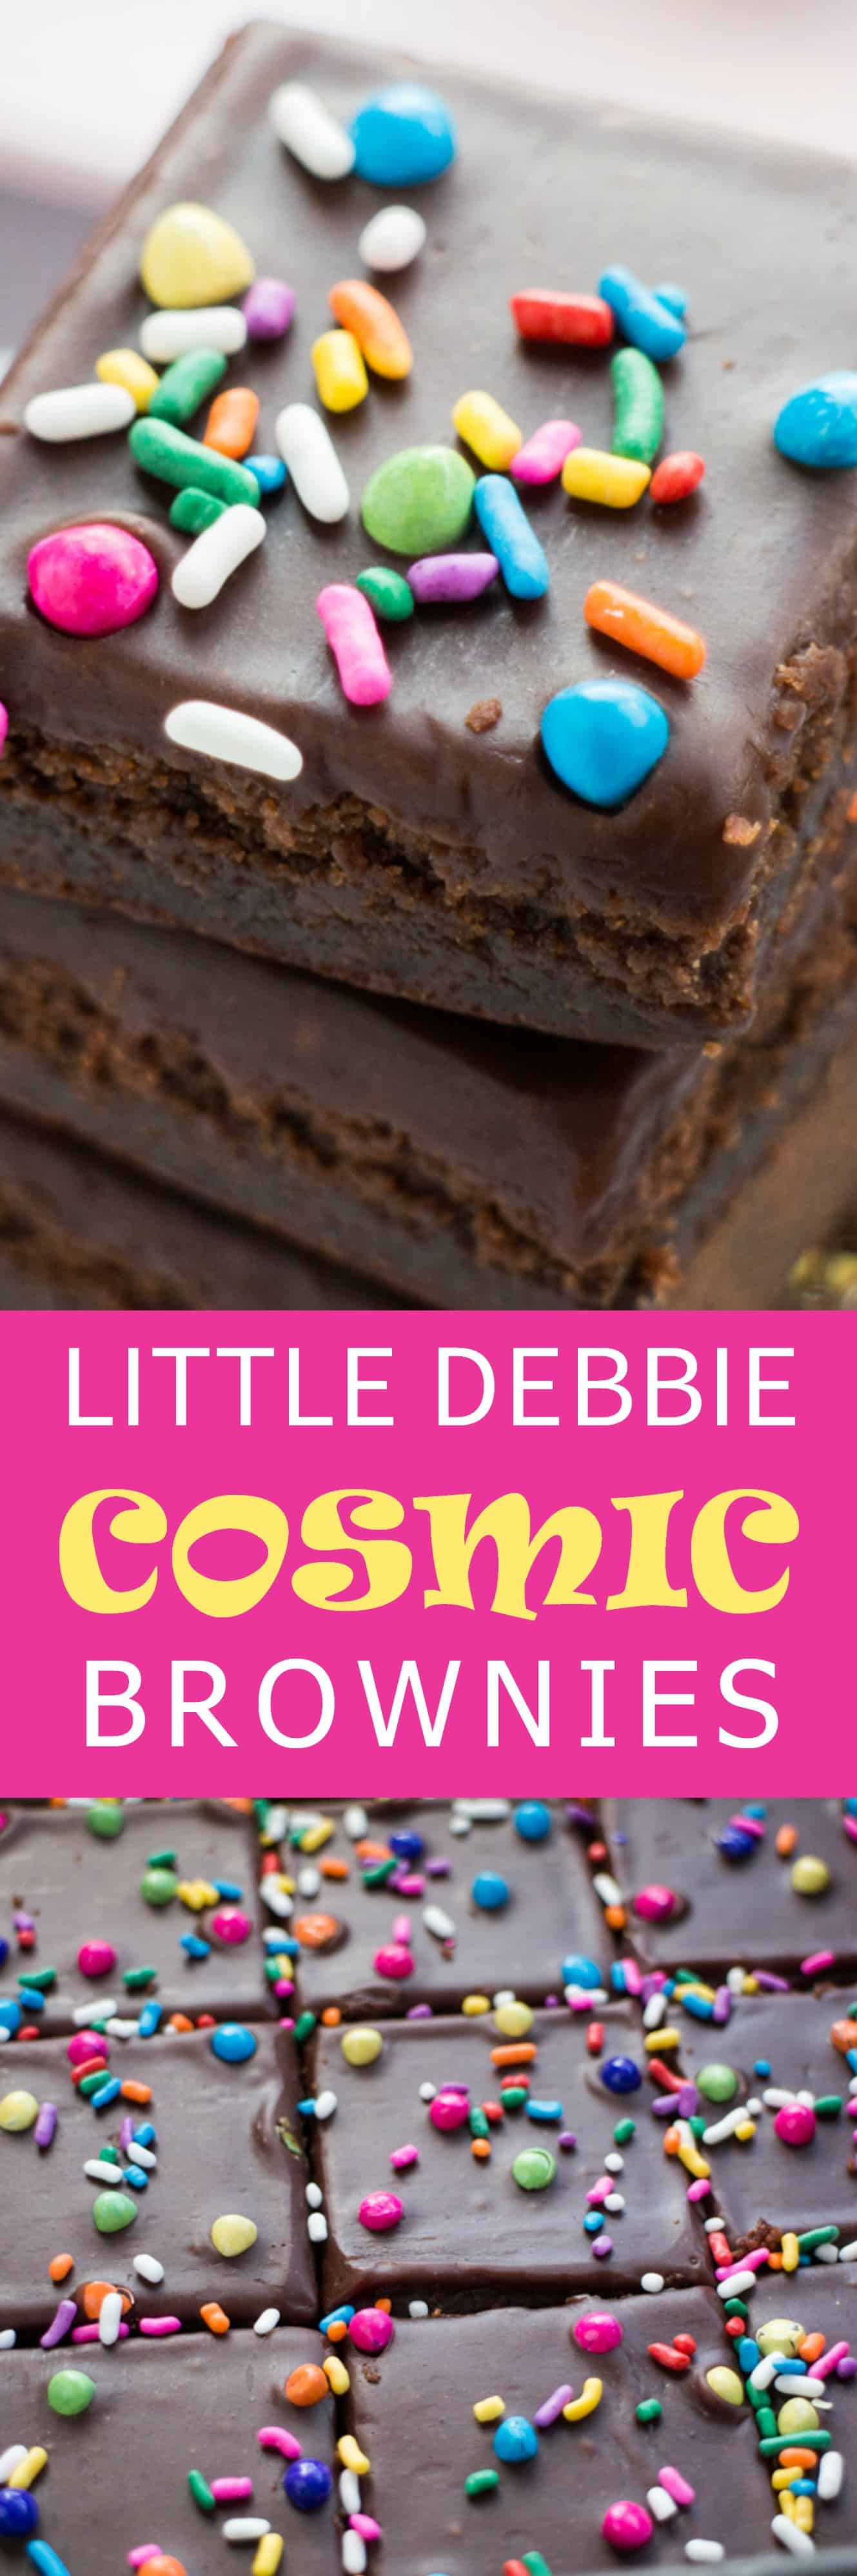 HOMEMADE Copycat Little Debbie Cosmic Brownies - just like you remember as a kid! Each brownie is 150 calories! This easy to make recipe includes a rich chocolate fudge frosting and rainbow sprinkles on top! Make this brownie dessert to share with your family! They make the best birthday brownies too!